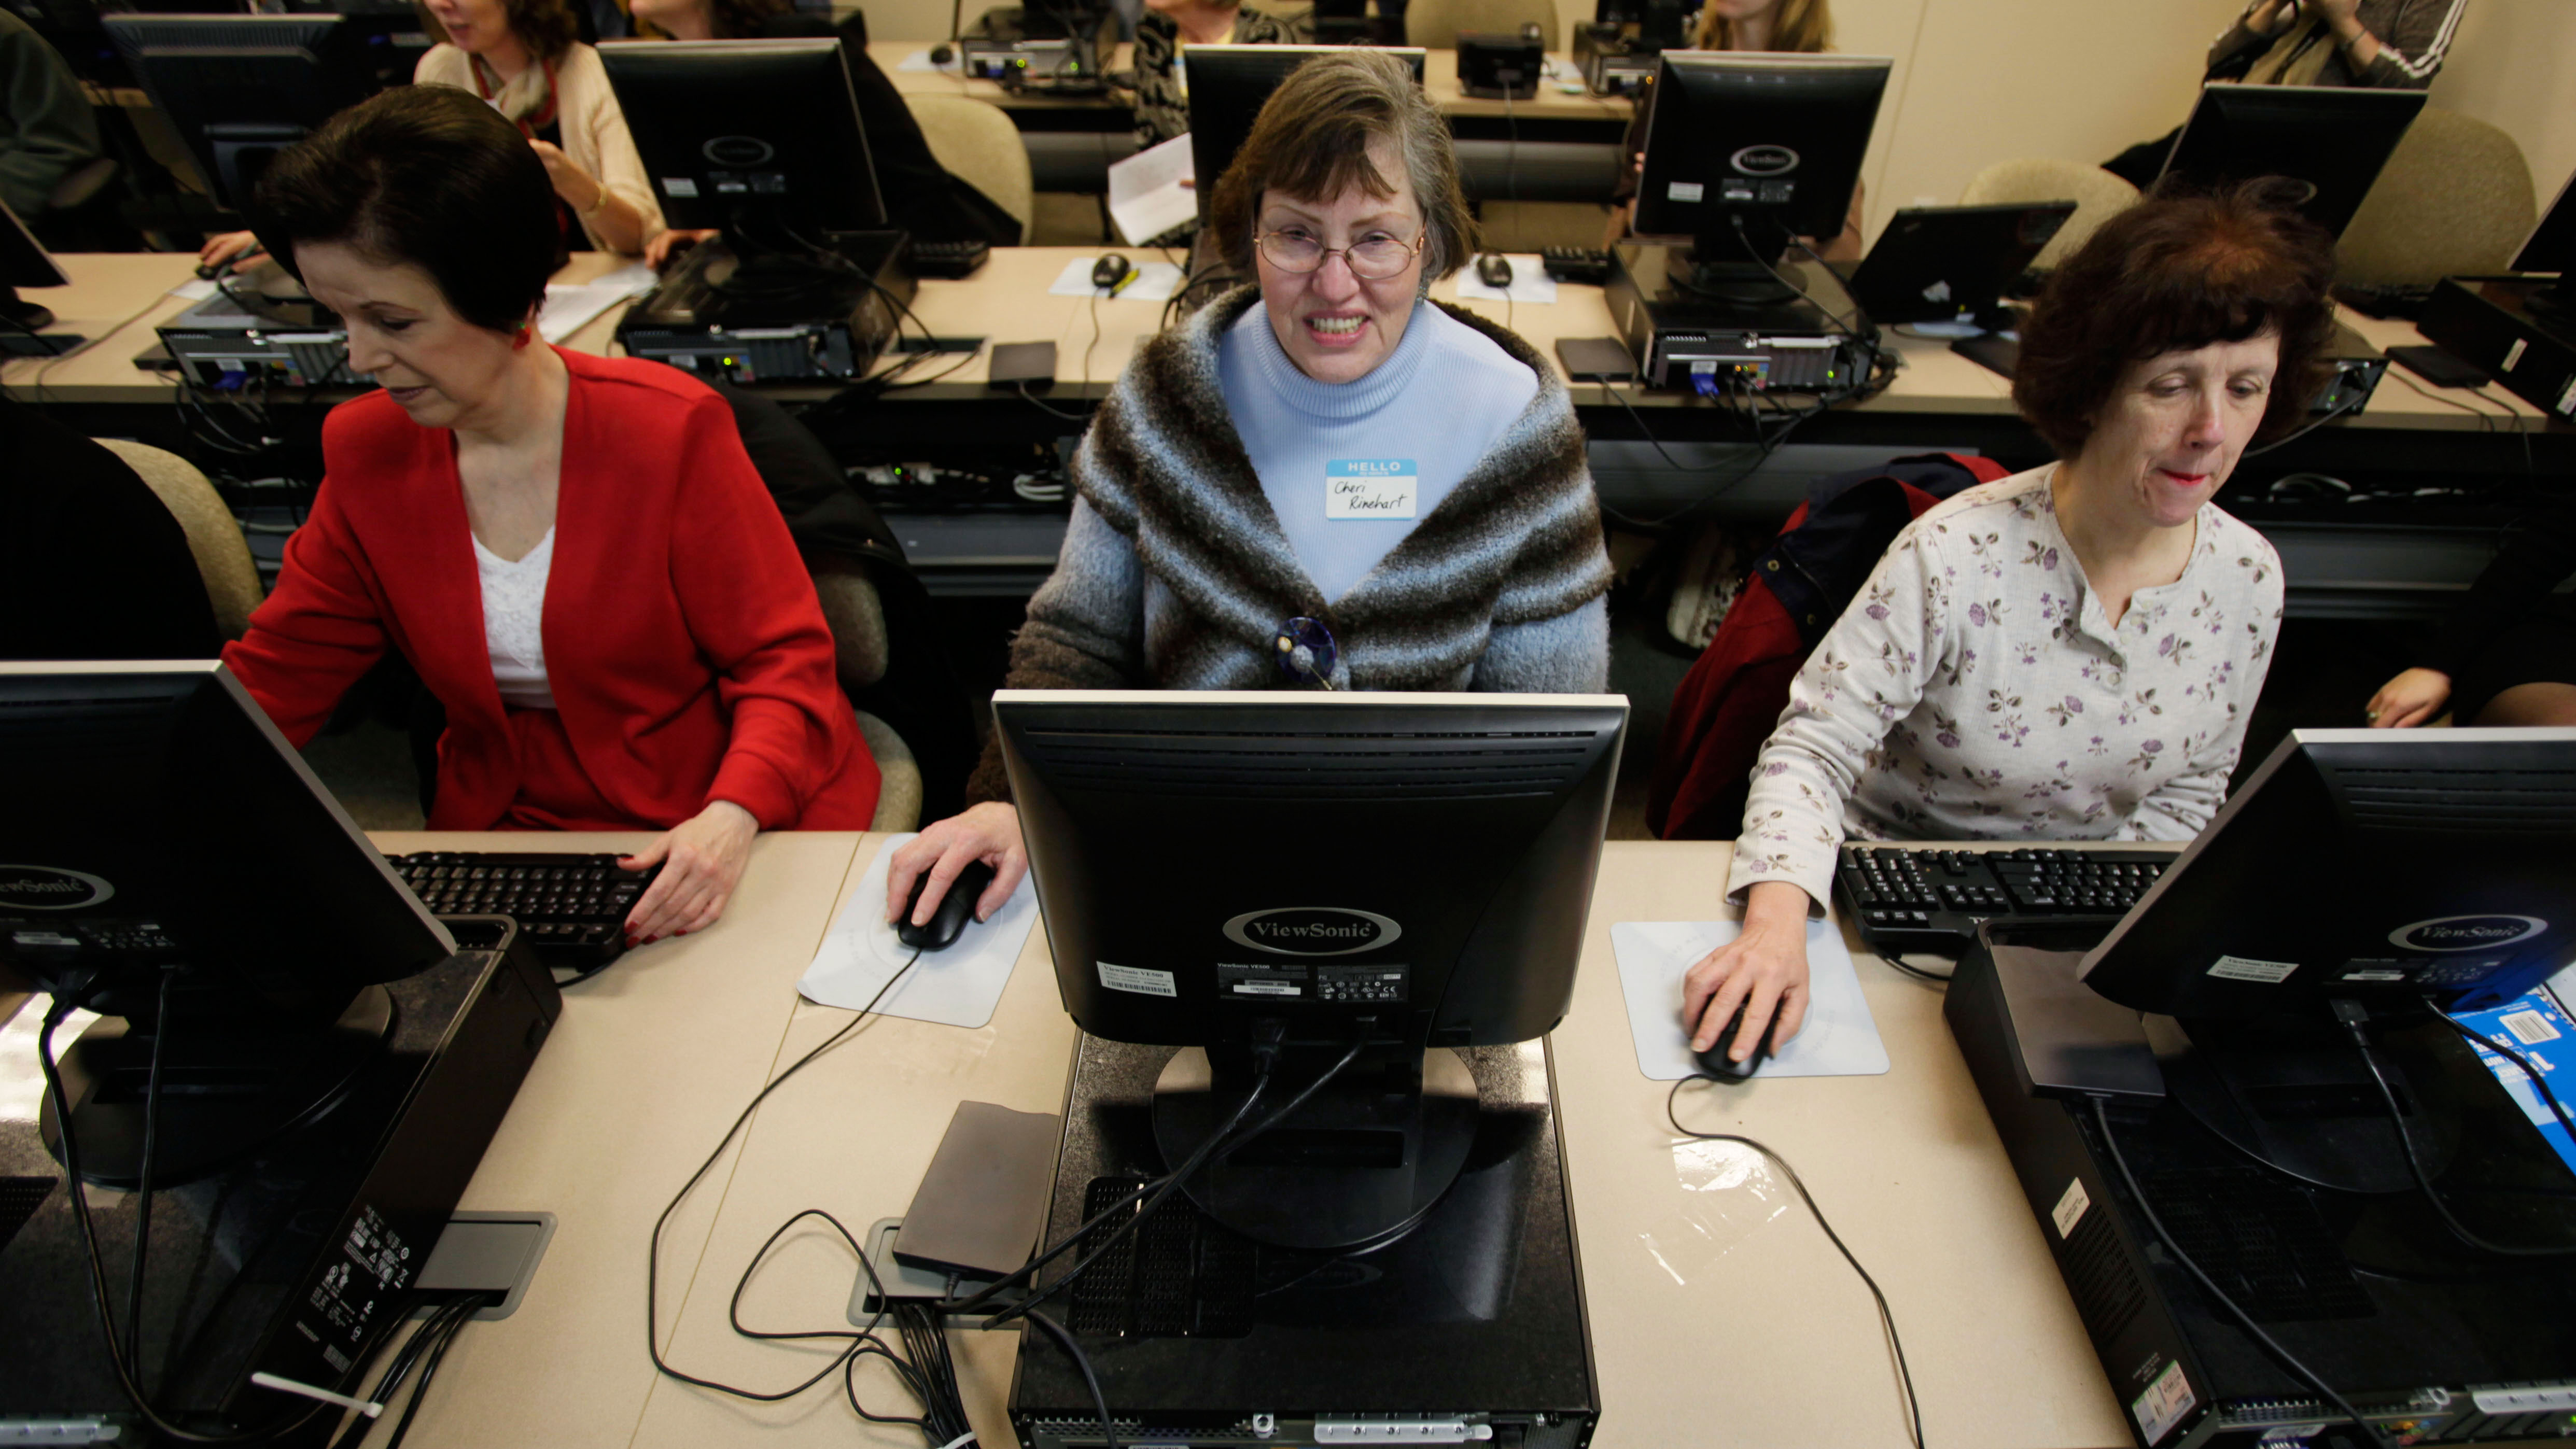 Sue Carter, left, Cheri Rinehart, center, and Loraine Terpening, right, work on computers, Monday, April 13, 2009, in a training lab at a WorkSource office in downtown Seattle, as they wait to hear about a program that will provide more than 30,000 training vouchers to workers and those seeking work in Washington state to pay for training courses ranging from basic technology literacy to intermediate-level technology skills. The program is a partnership between Microsoft, the state's Employment Security Department and the Workforce Development Council of Seattle-King County. (AP Photo/Ted S. Warren)